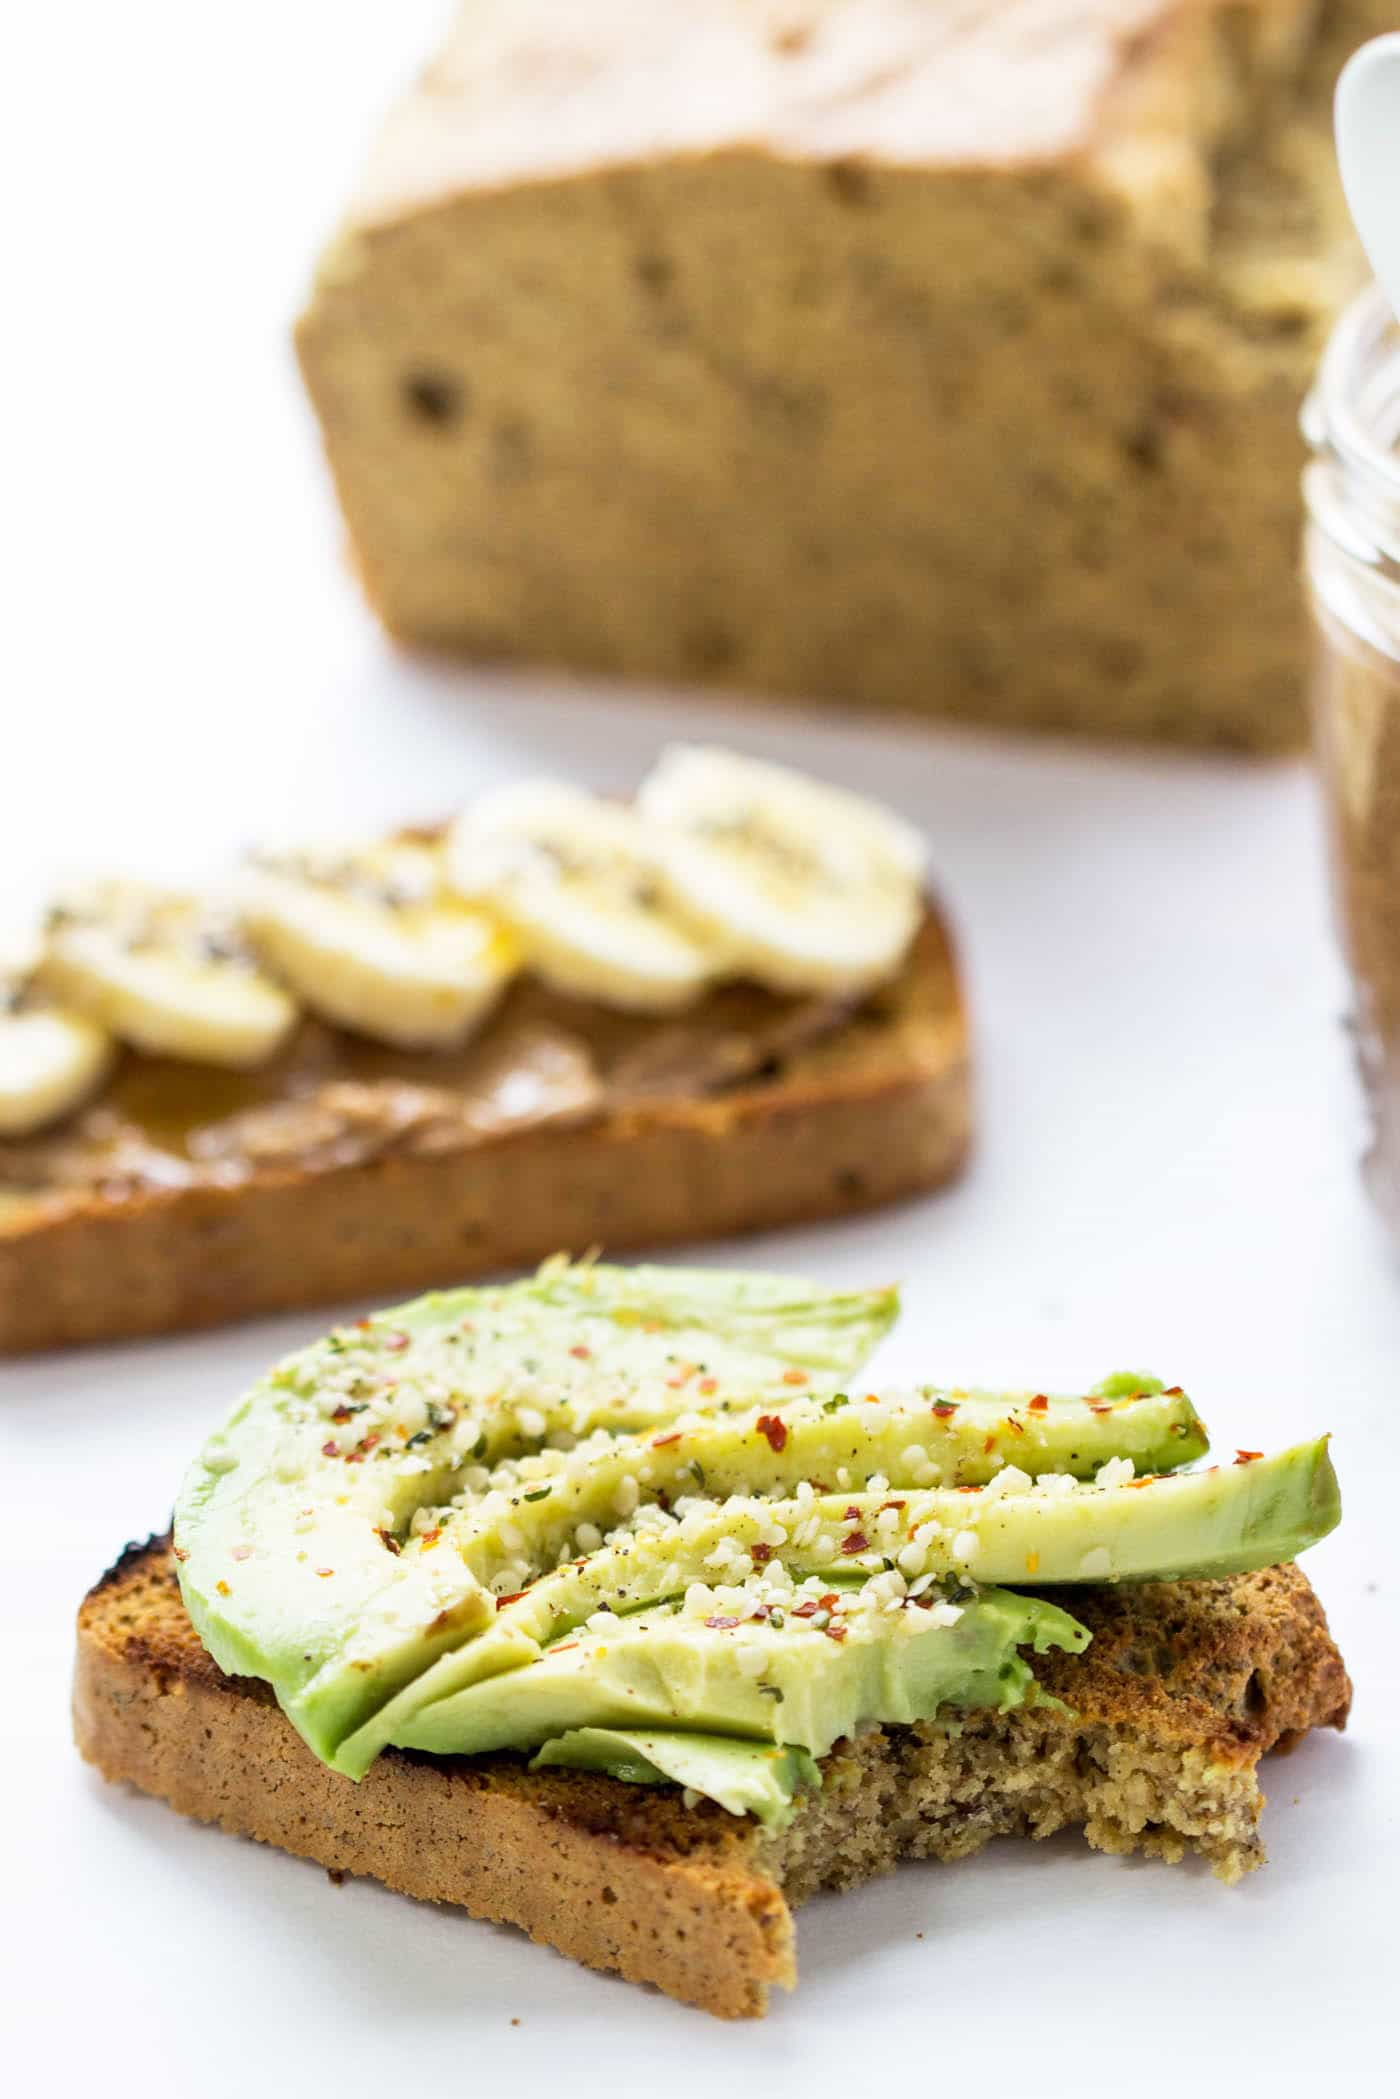 Healthy almond flour bread is the BEST base for avocado toast